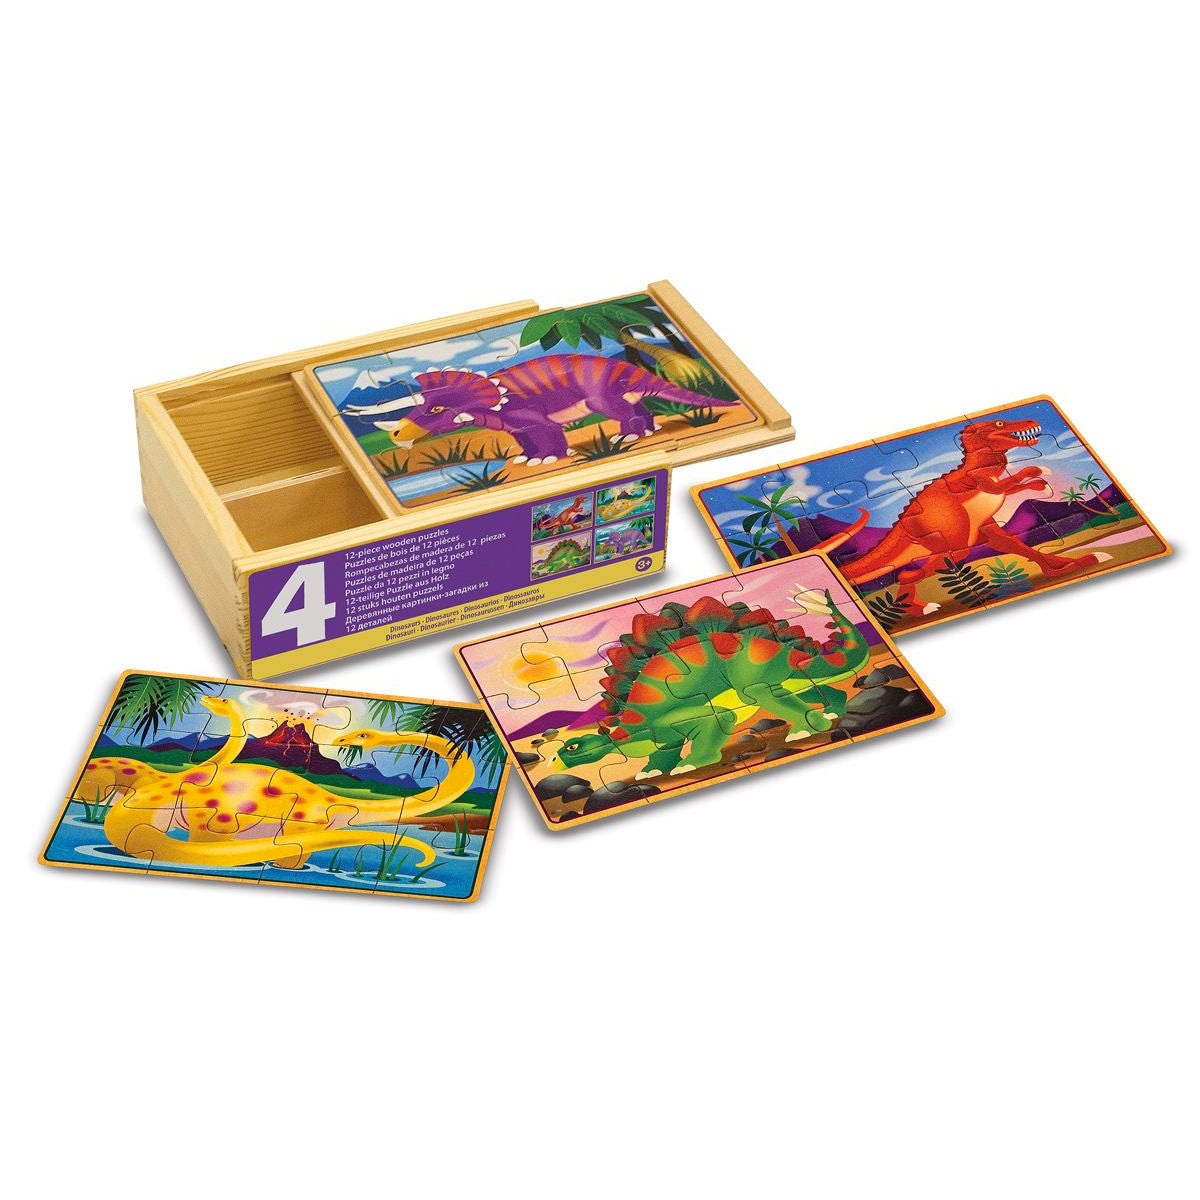 Jigsaw Puzzles in a Box - Set of 4  Dinosaurs - Melissa and Doug - Little Earth Nest - 2